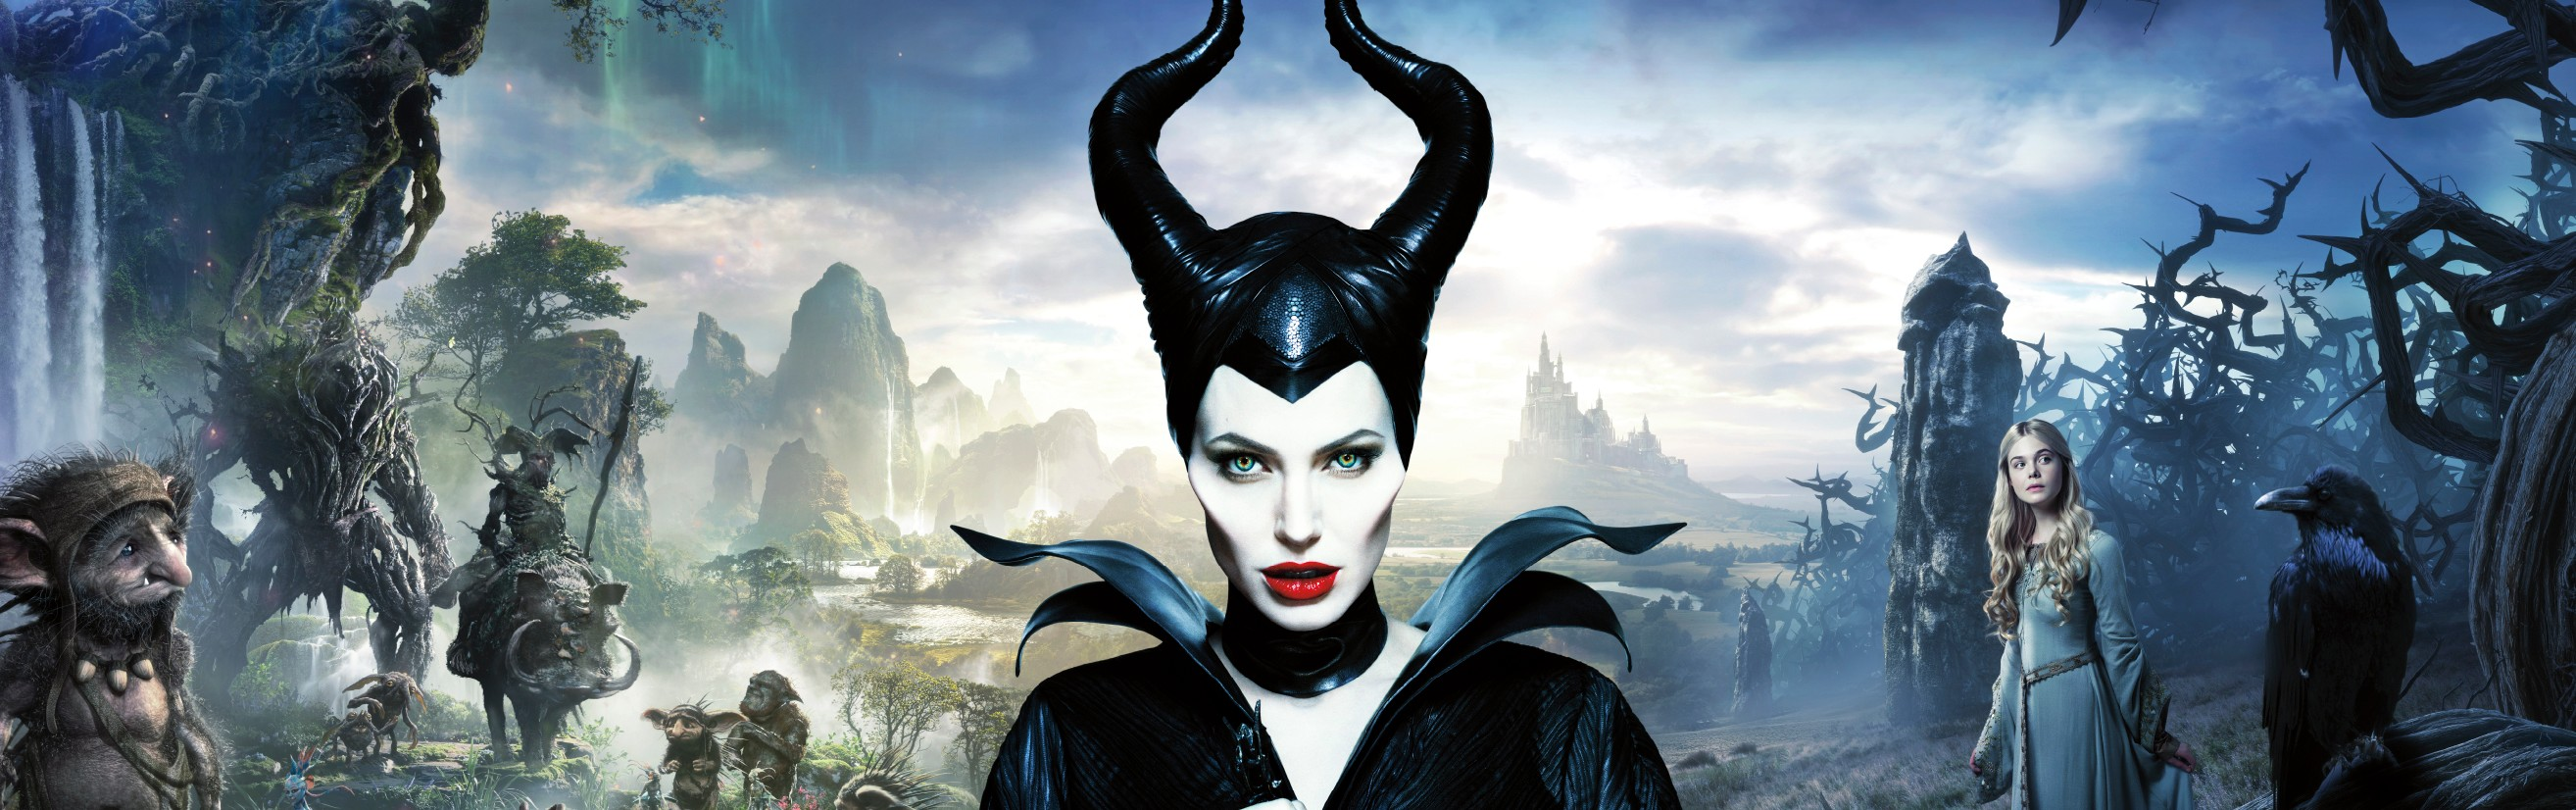 Maleficent on Netflix